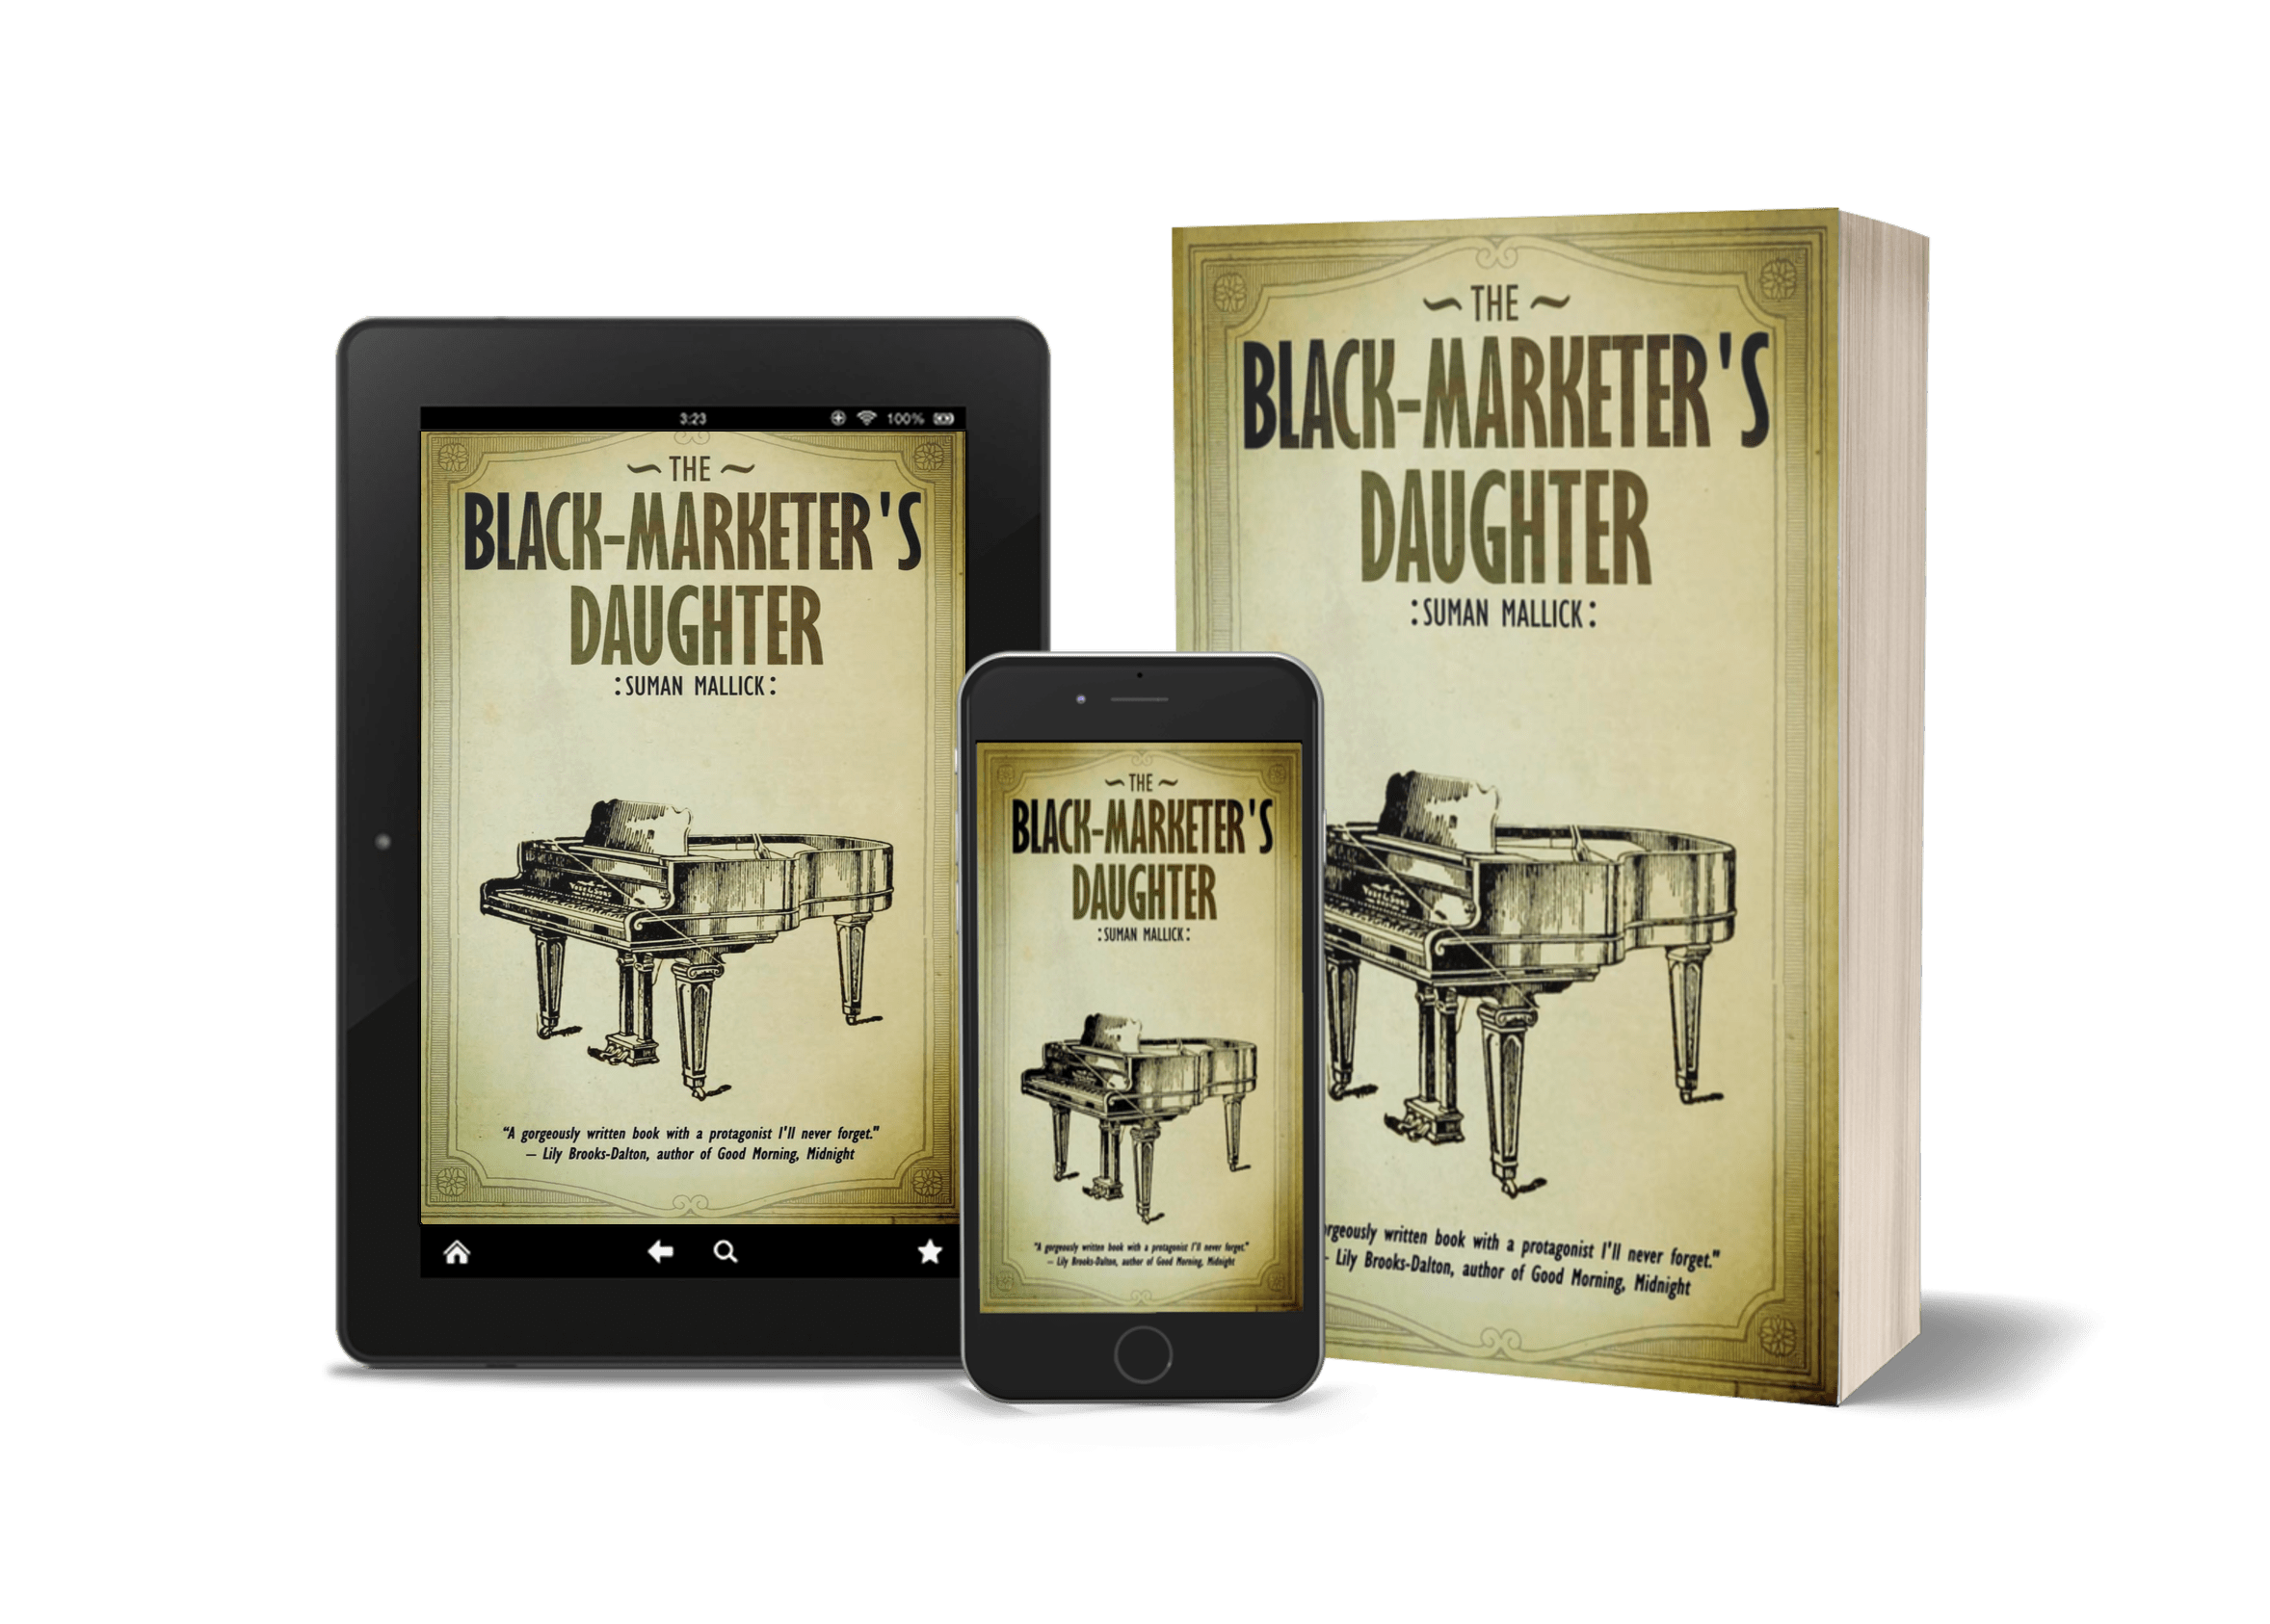 Review: The Black-Marketer's Daughter, by Suman Mallick